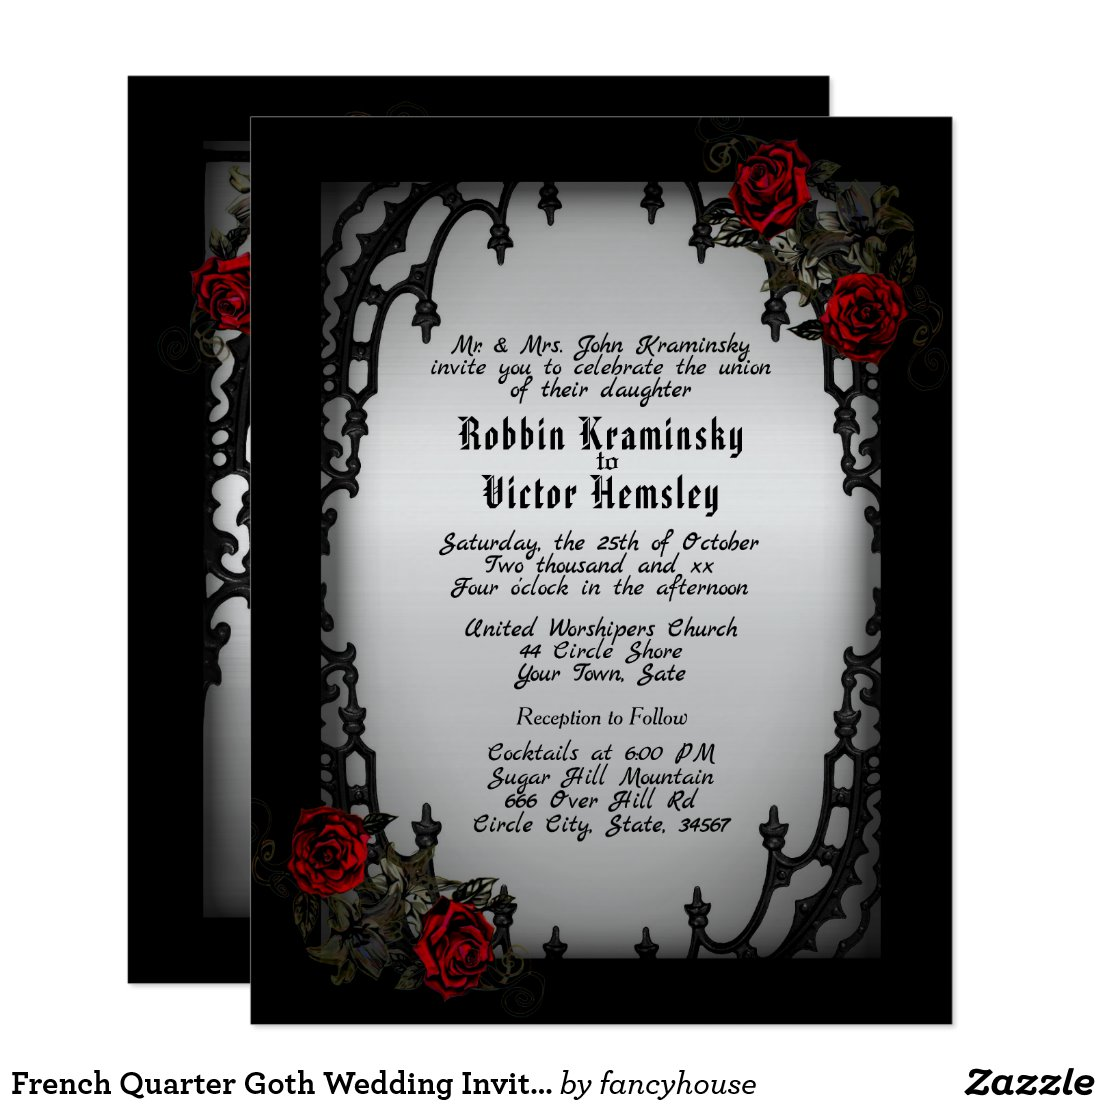 French Quarter Goth Wedding Invitation